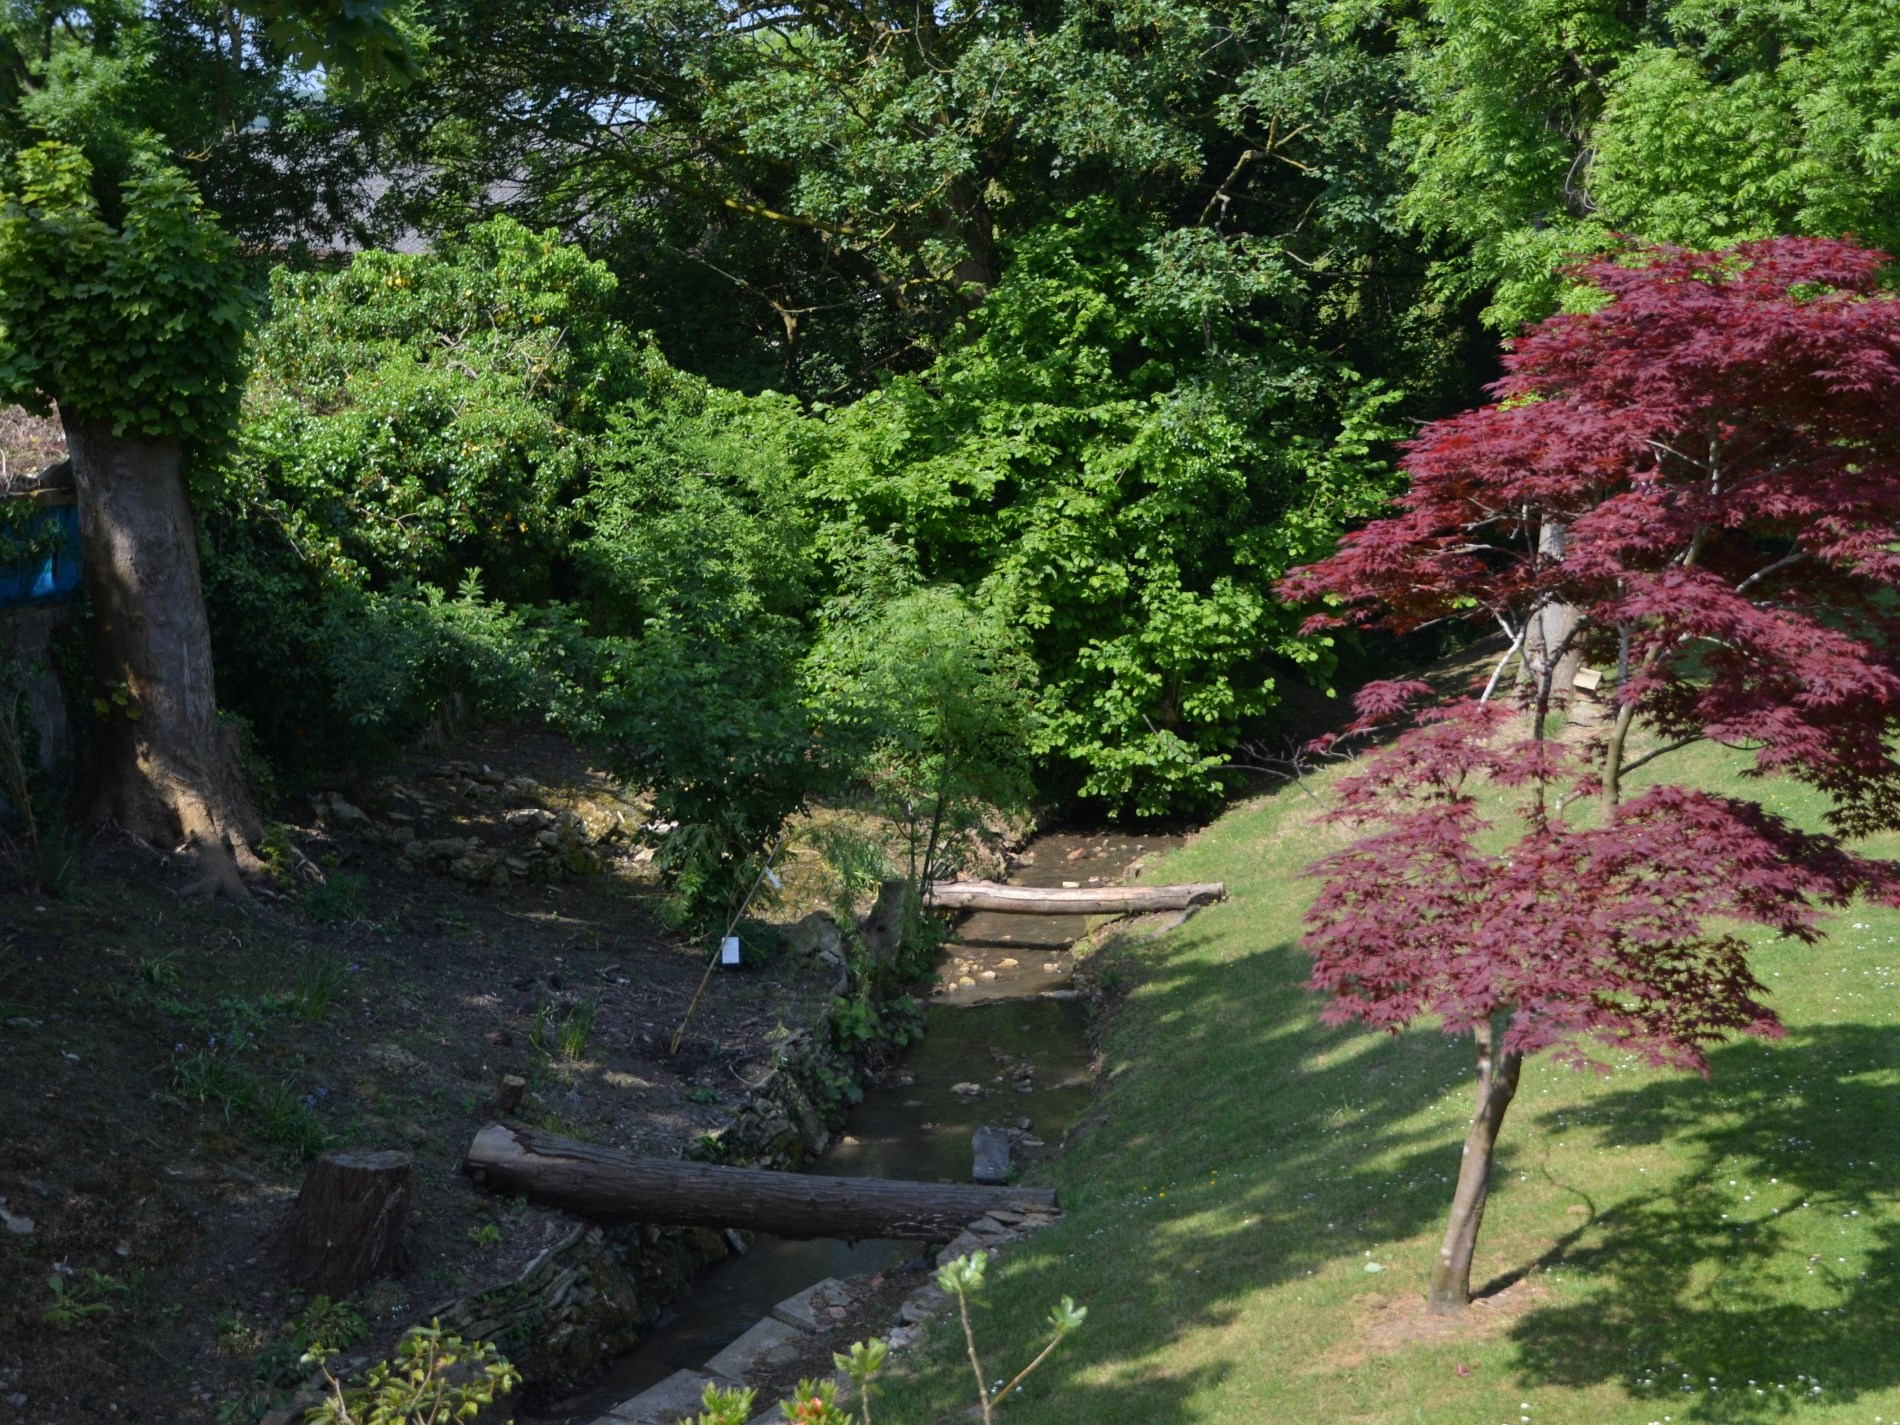 Views of the stream at the end of the garden